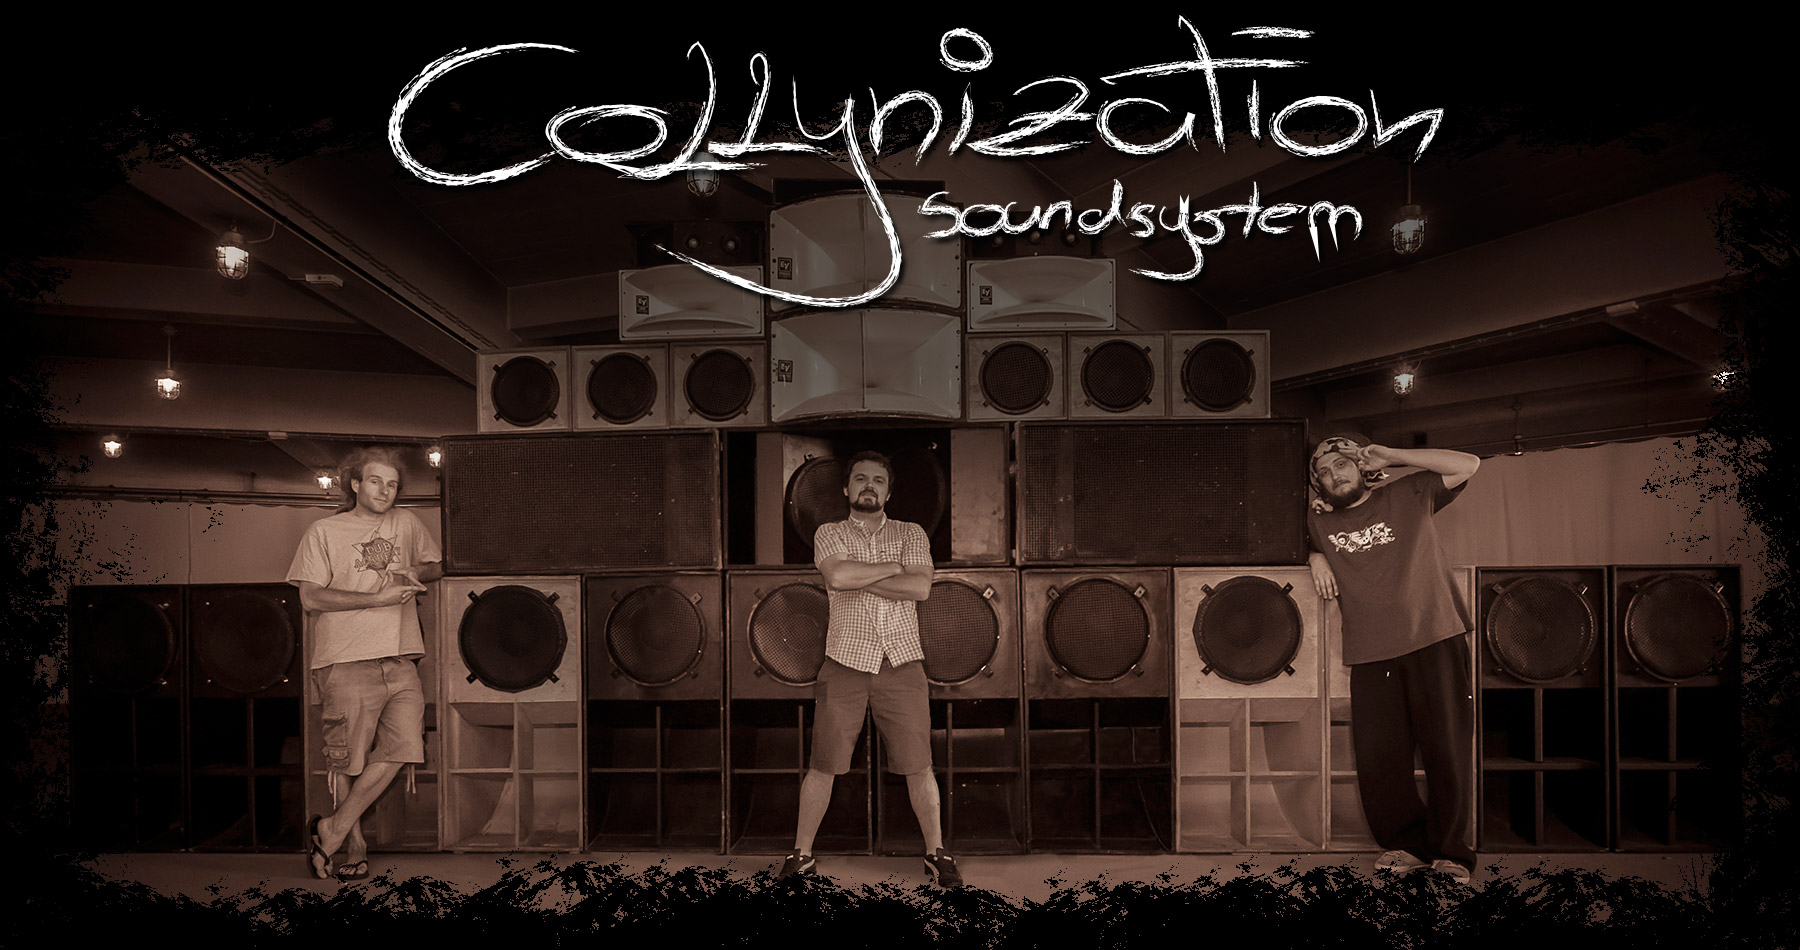 Collynization Soundsystem